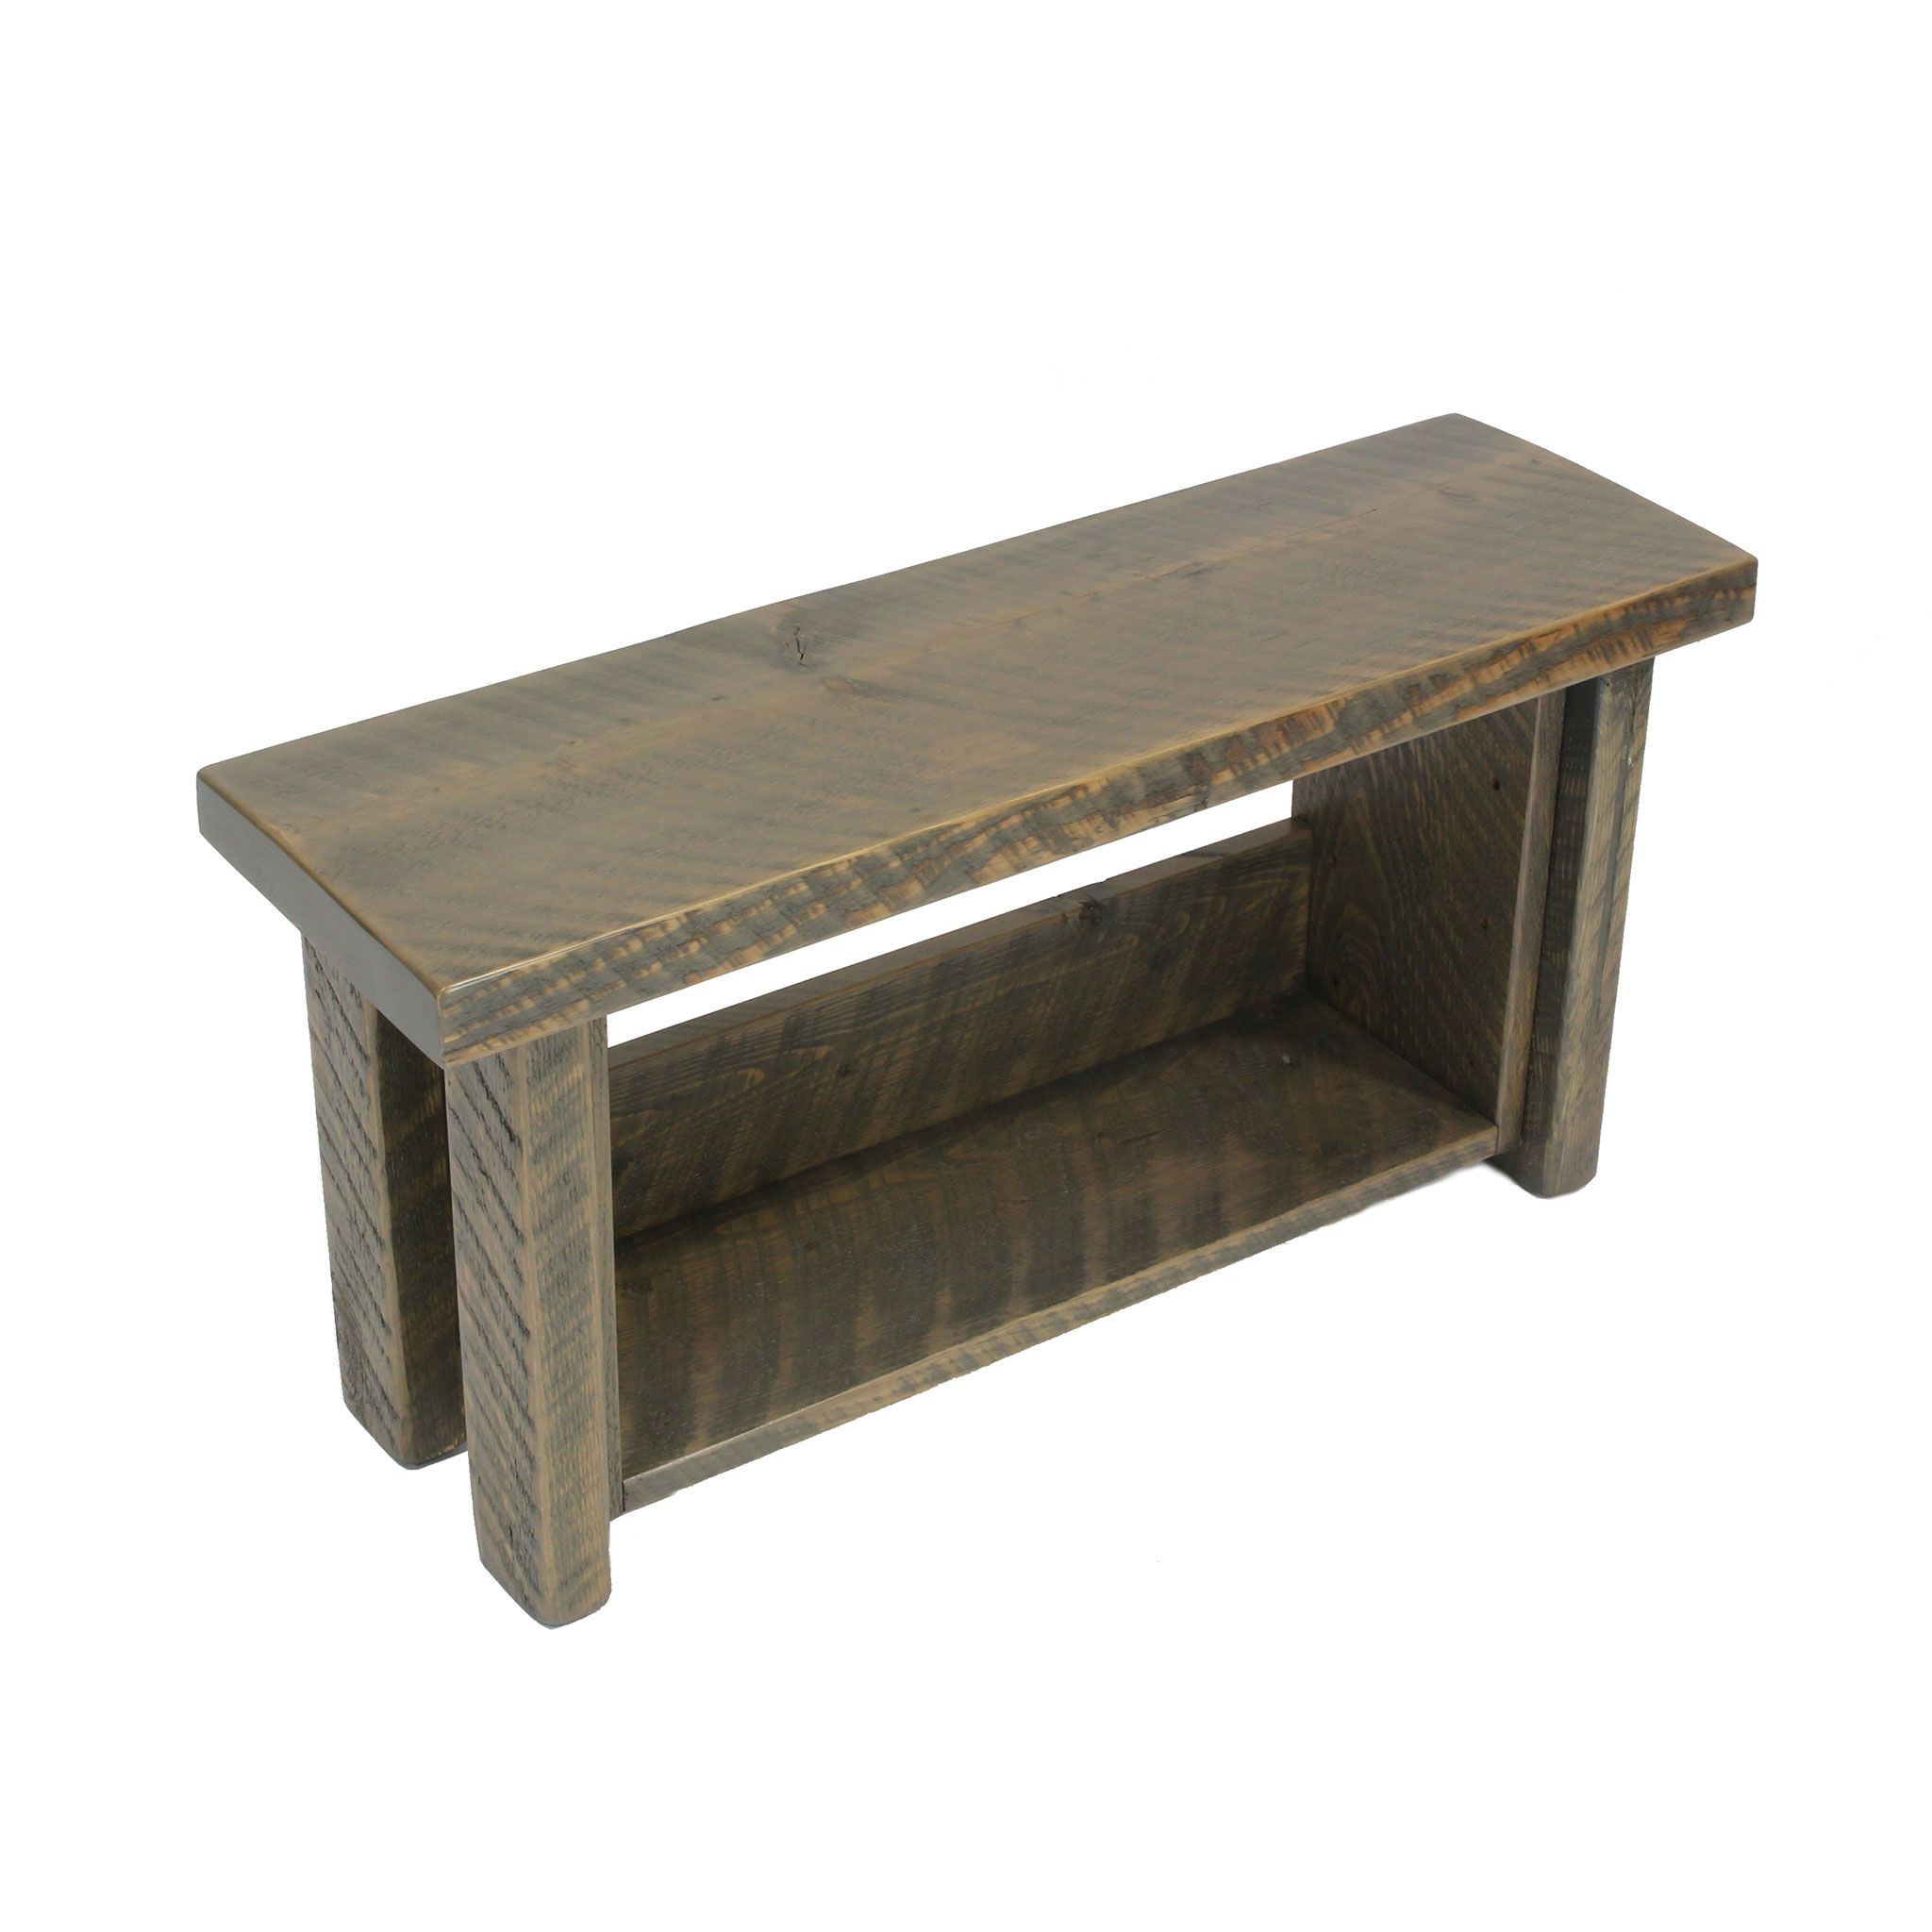 Rustic storage shelf bench made from solid circle sawn fir stained